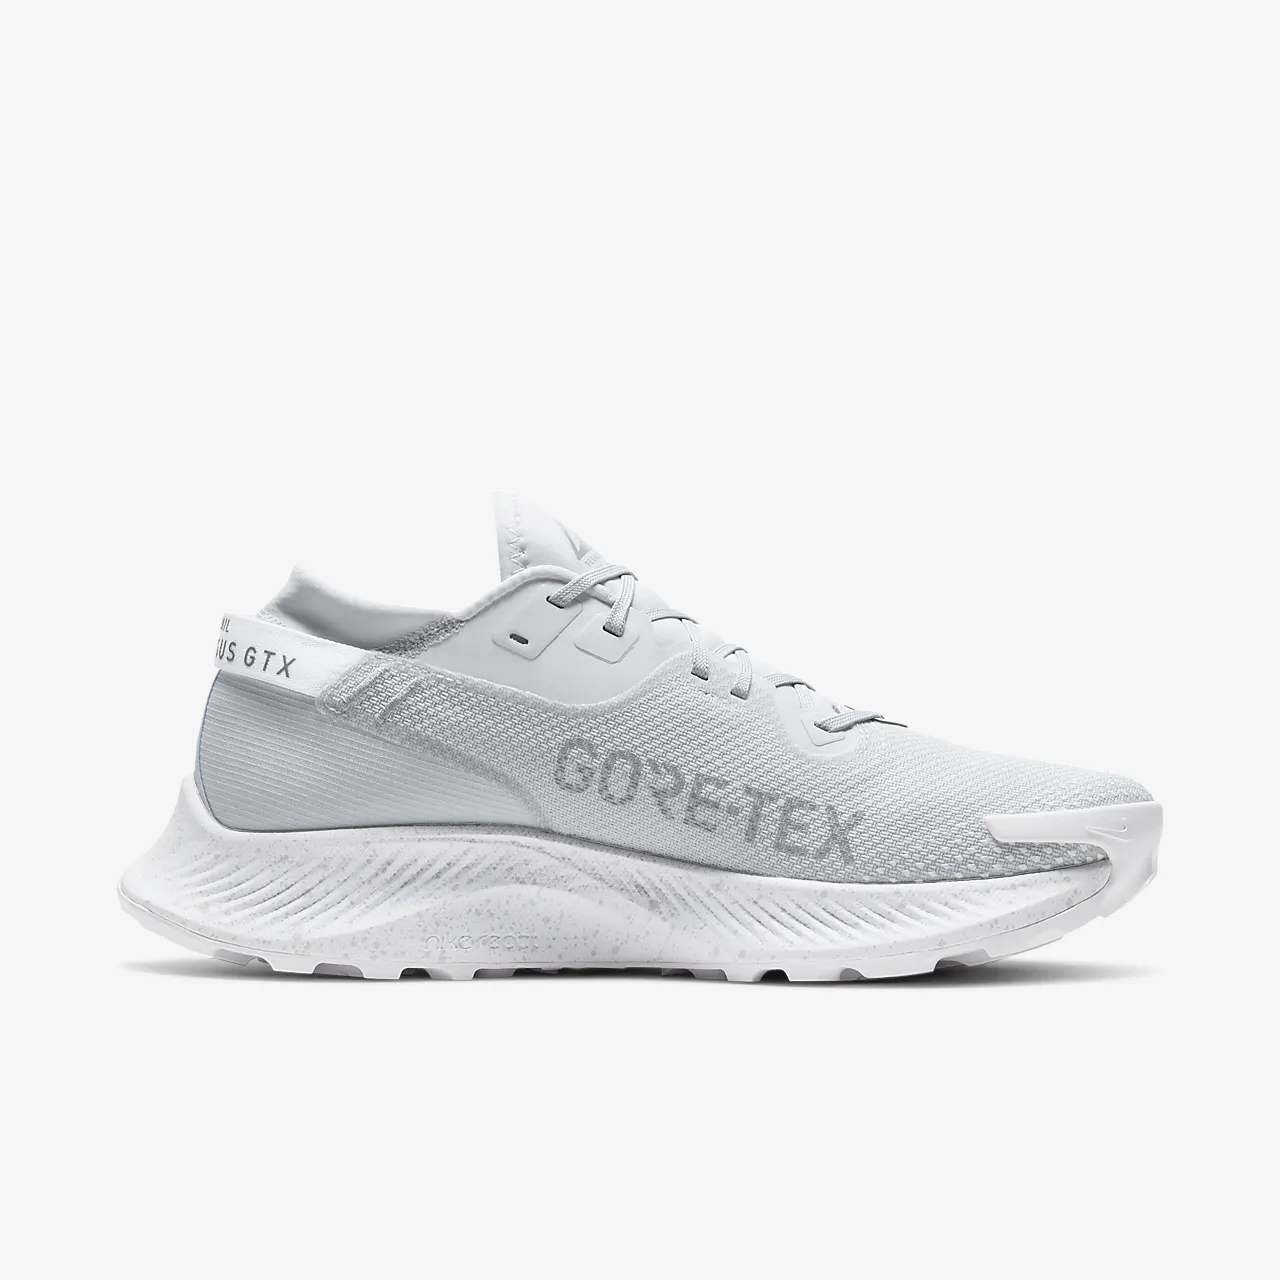 유럽직배송 나이키 NIKE Nike Pegasus Trail 2 GORE-TEX Trail Running Shoe DC1933-100